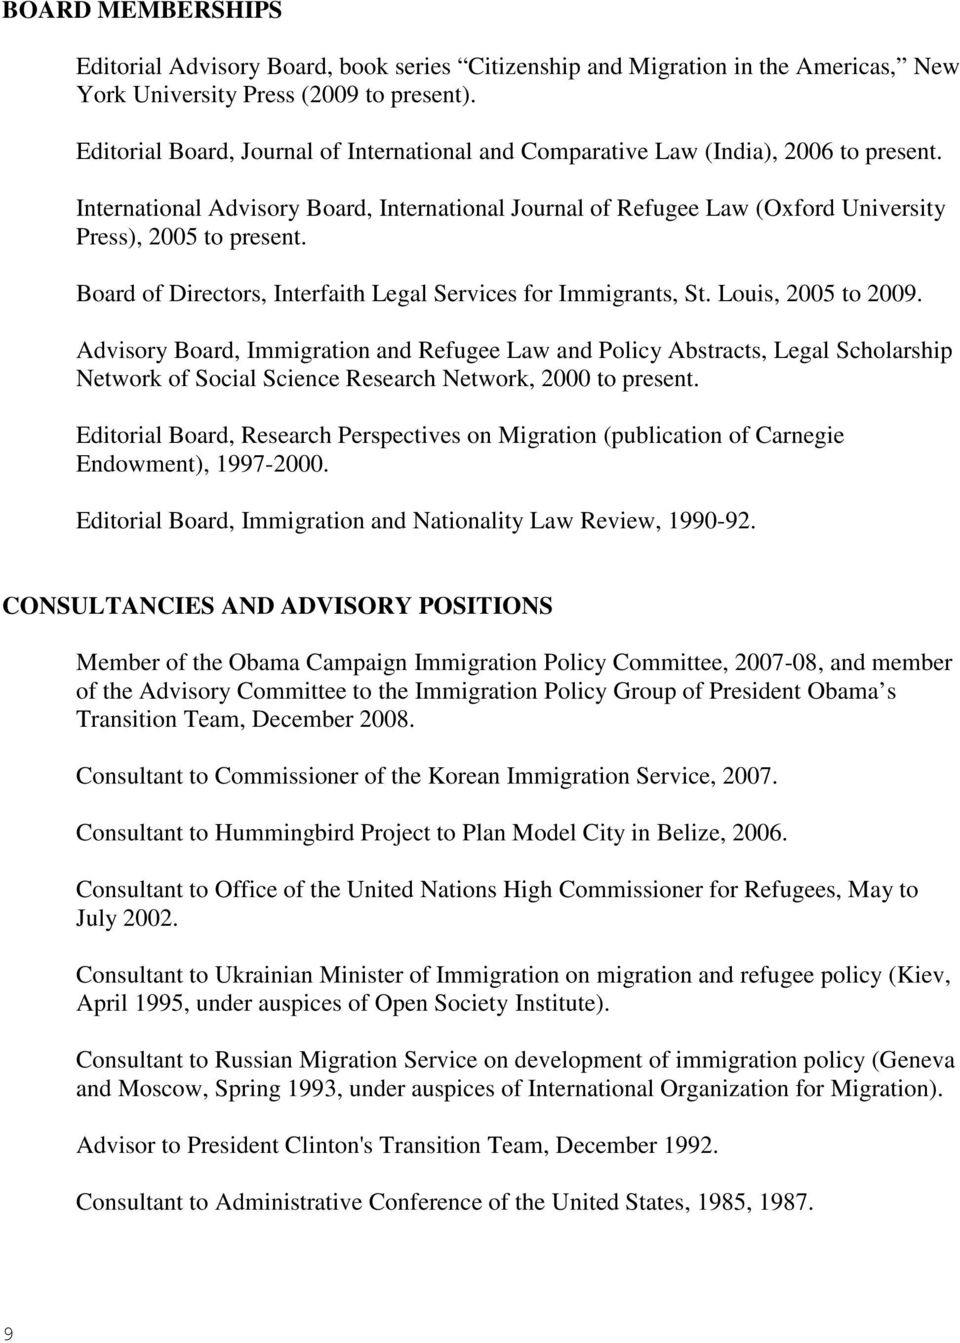 Board of Directors, Interfaith Legal Services for Immigrants, St. Louis, 2005 to 2009.